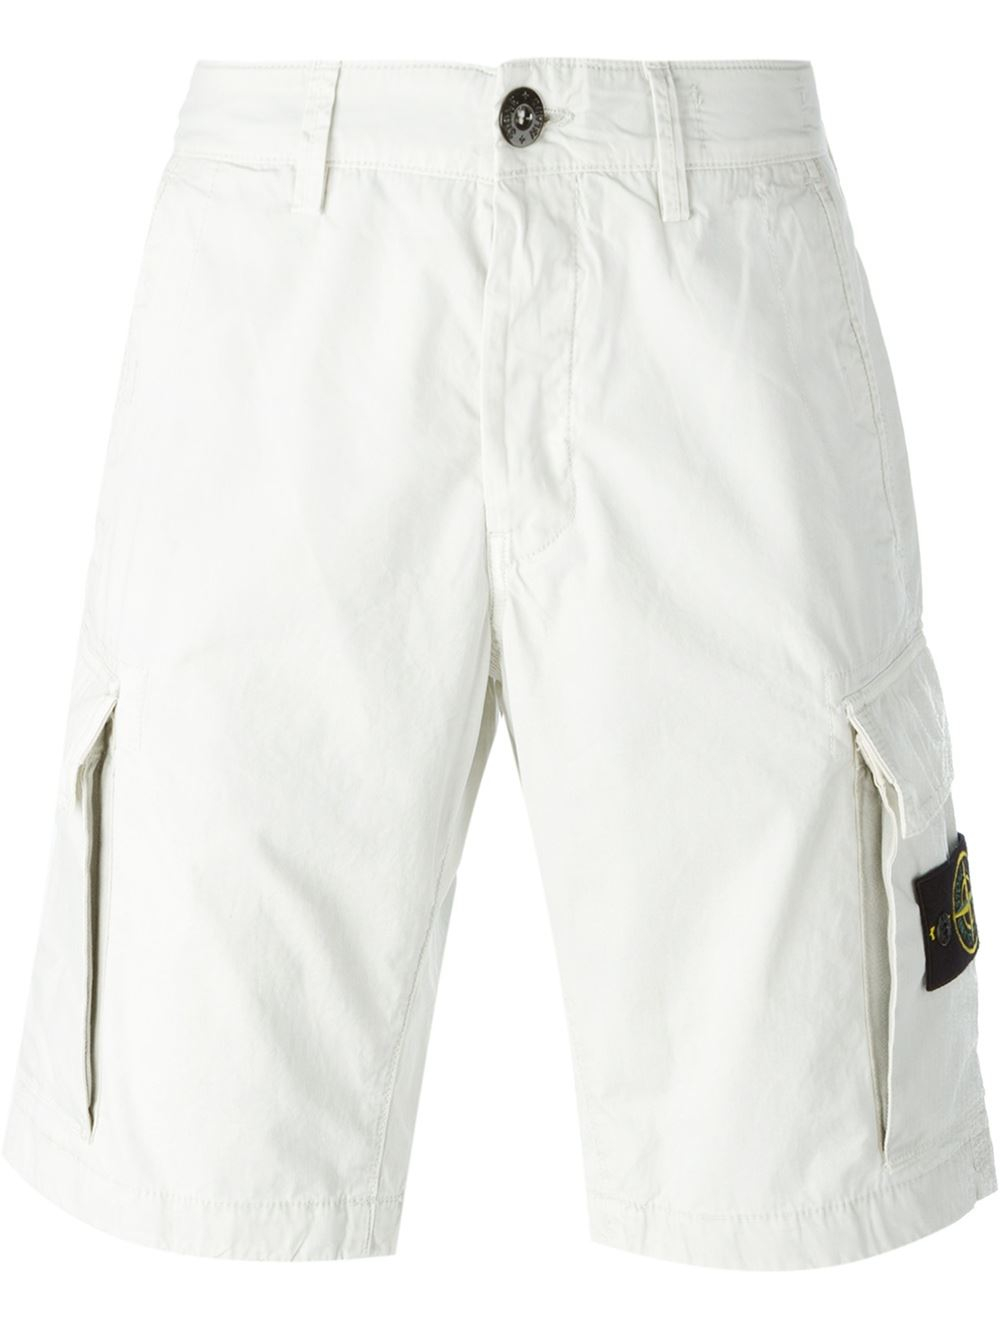 lyst stone island cargo shorts in white for men. Black Bedroom Furniture Sets. Home Design Ideas